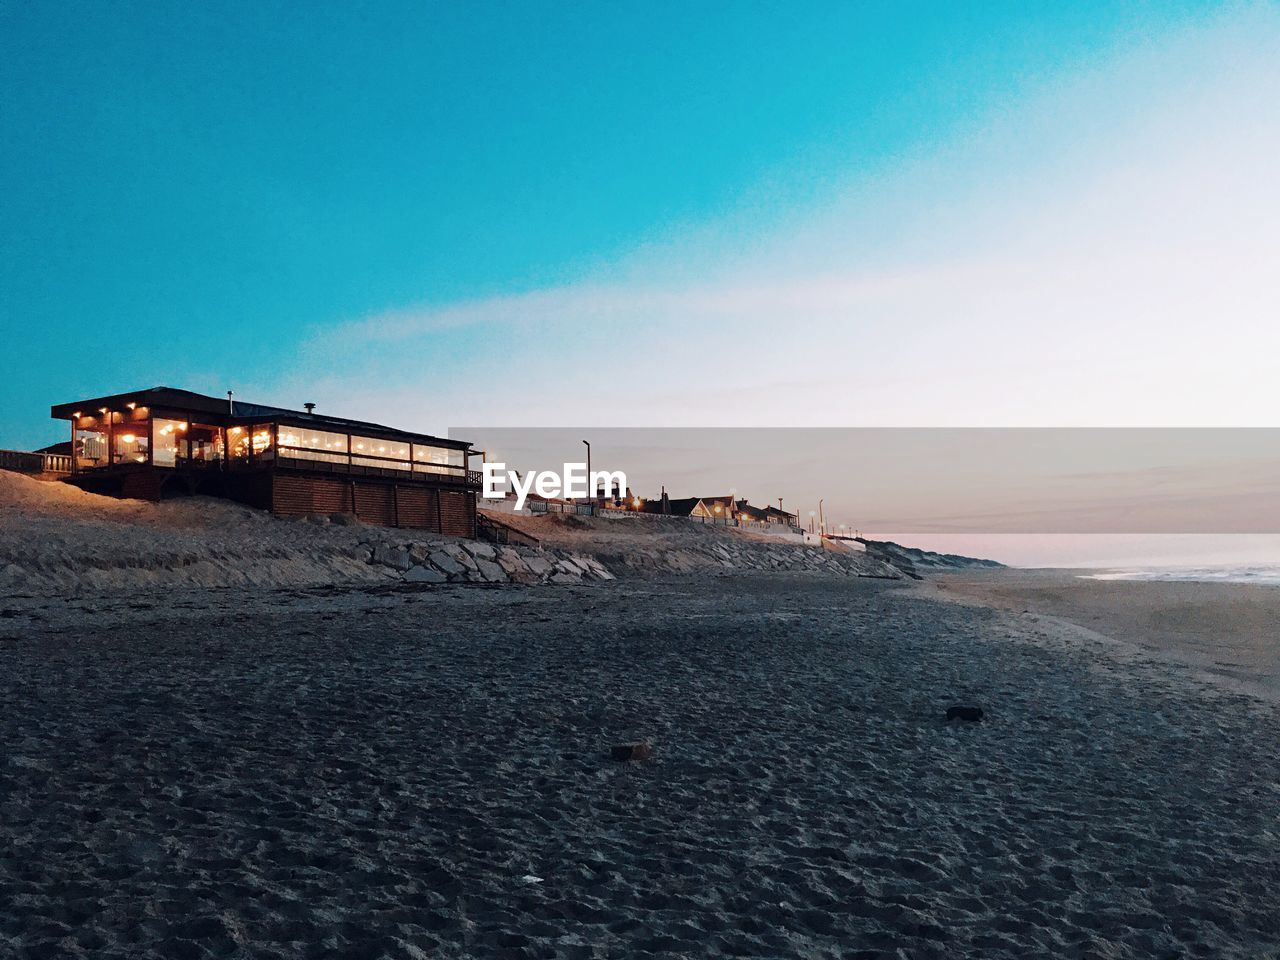 sky, architecture, built structure, building exterior, nature, copy space, sunset, no people, land, scenics - nature, beach, outdoors, abandoned, cold temperature, tranquility, water, transportation, tranquil scene, clear sky